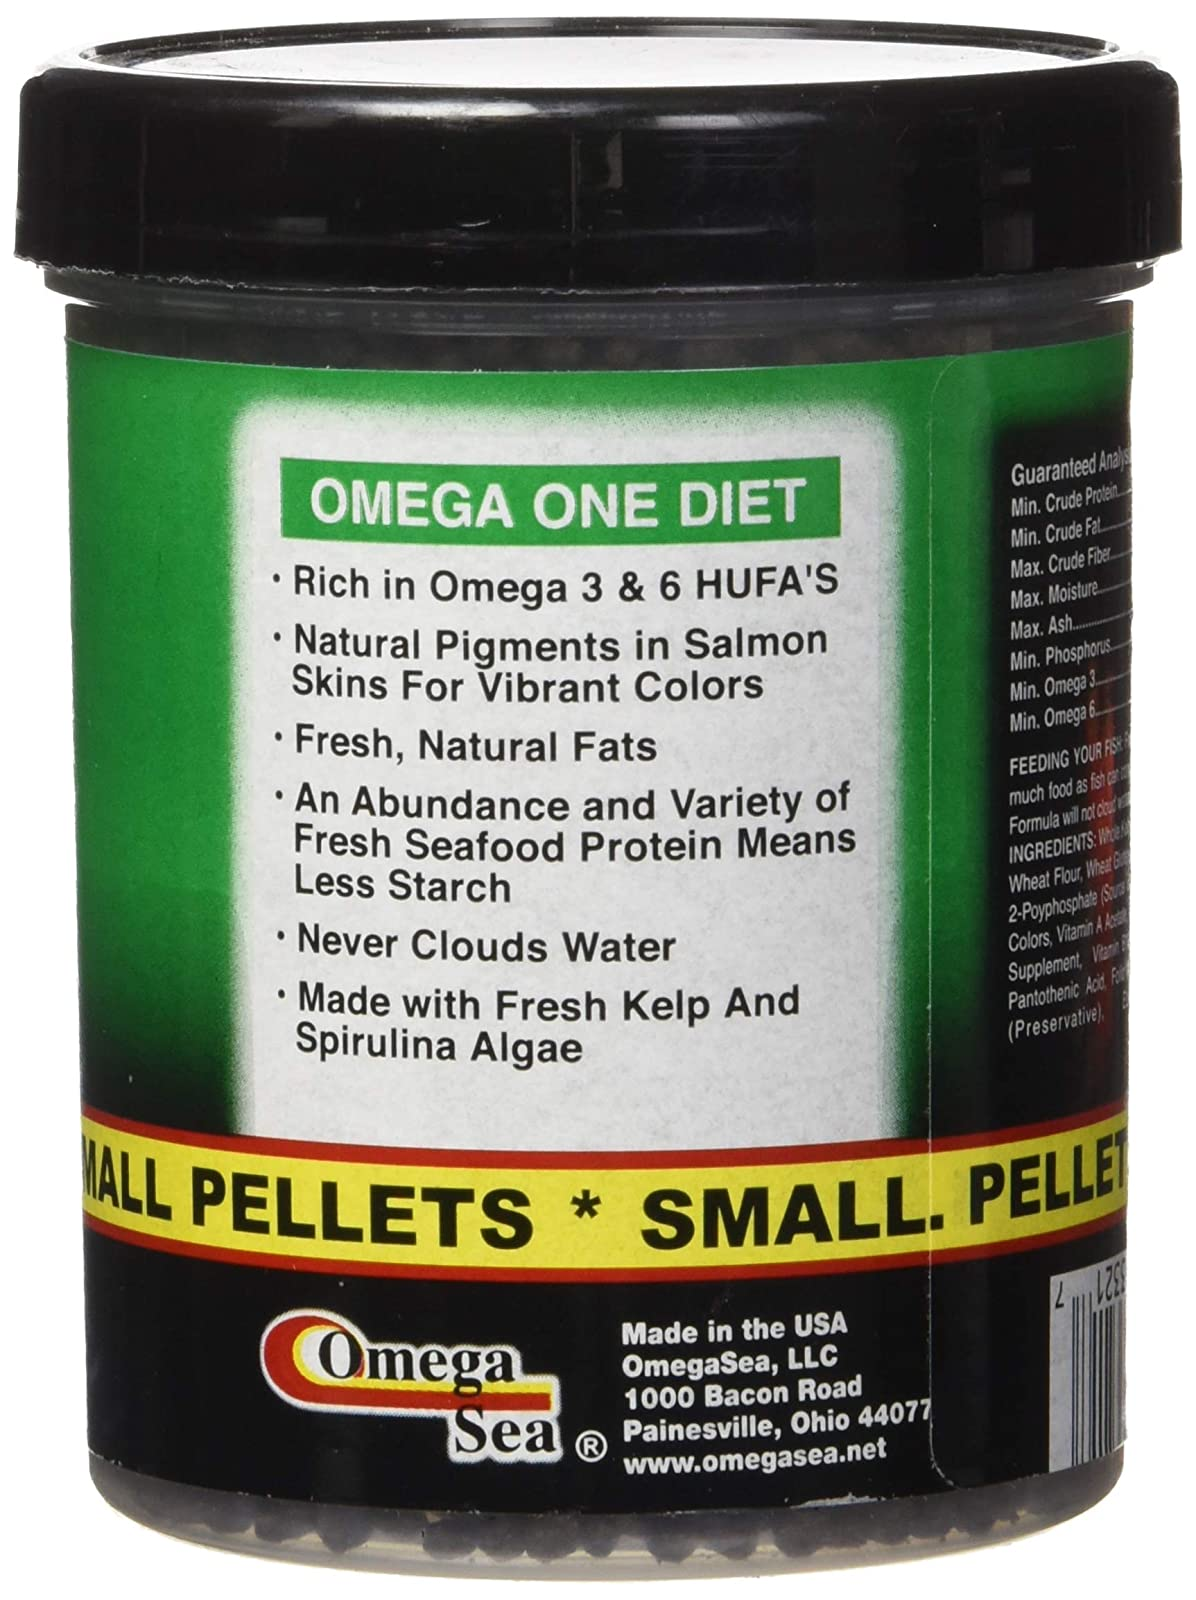 Omega One Super Veggie Pellets Small 3.5oz SHOMHNK004 - 1